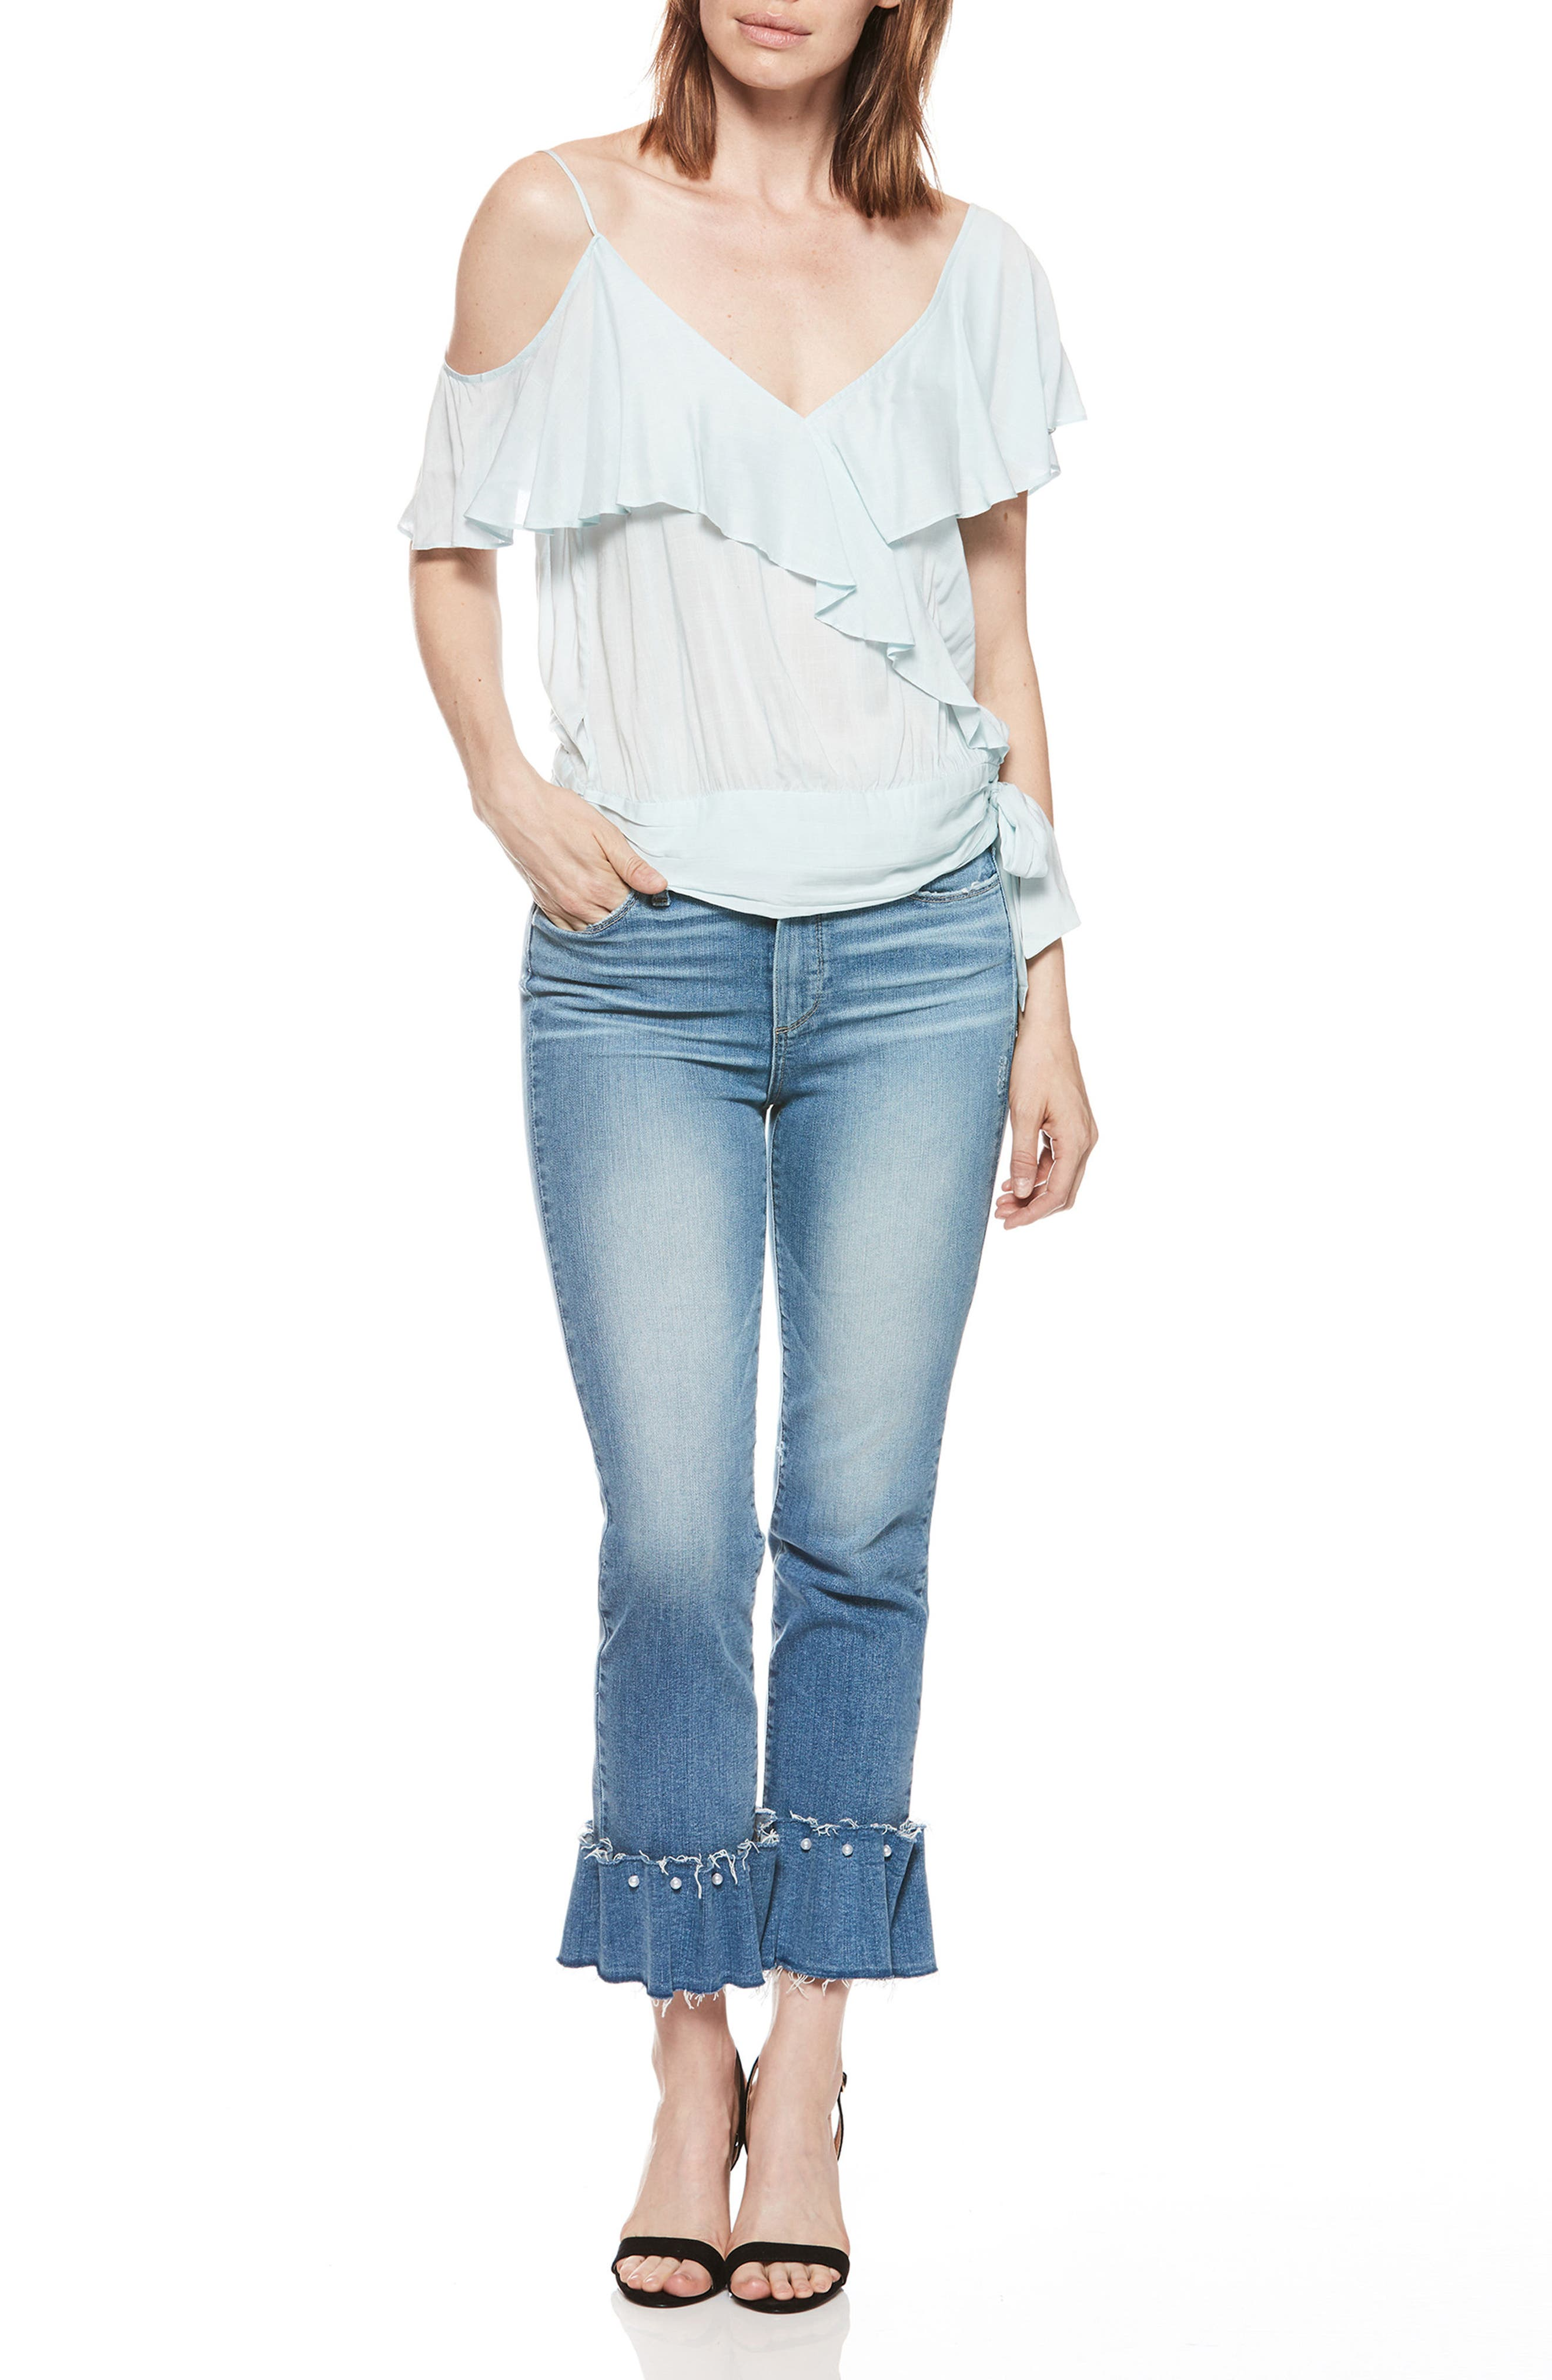 Transcend Vintage - Hoxton Embellished Ruffle High Waist Jeans,                             Alternate thumbnail 7, color,                             PALMS